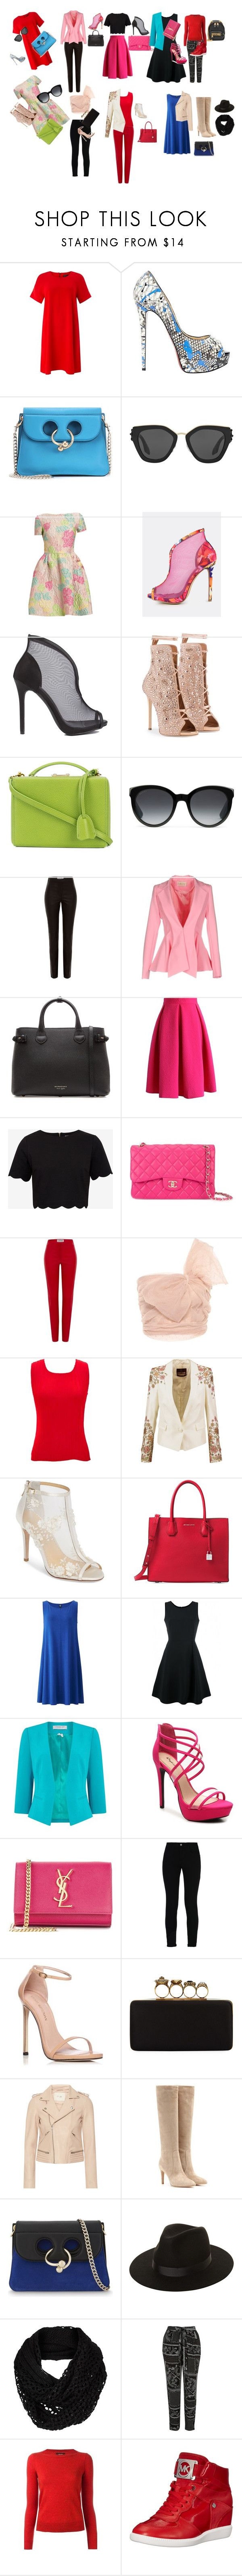 """""""9 sets to get"""" by stracyolivier on Polyvore featuring Phase Eight, Christian Louboutin, J.W. Anderson, Prada, Giuseppe Zanotti, Mark Cross, Gucci, Loewe, L'Atelier and Burberry"""